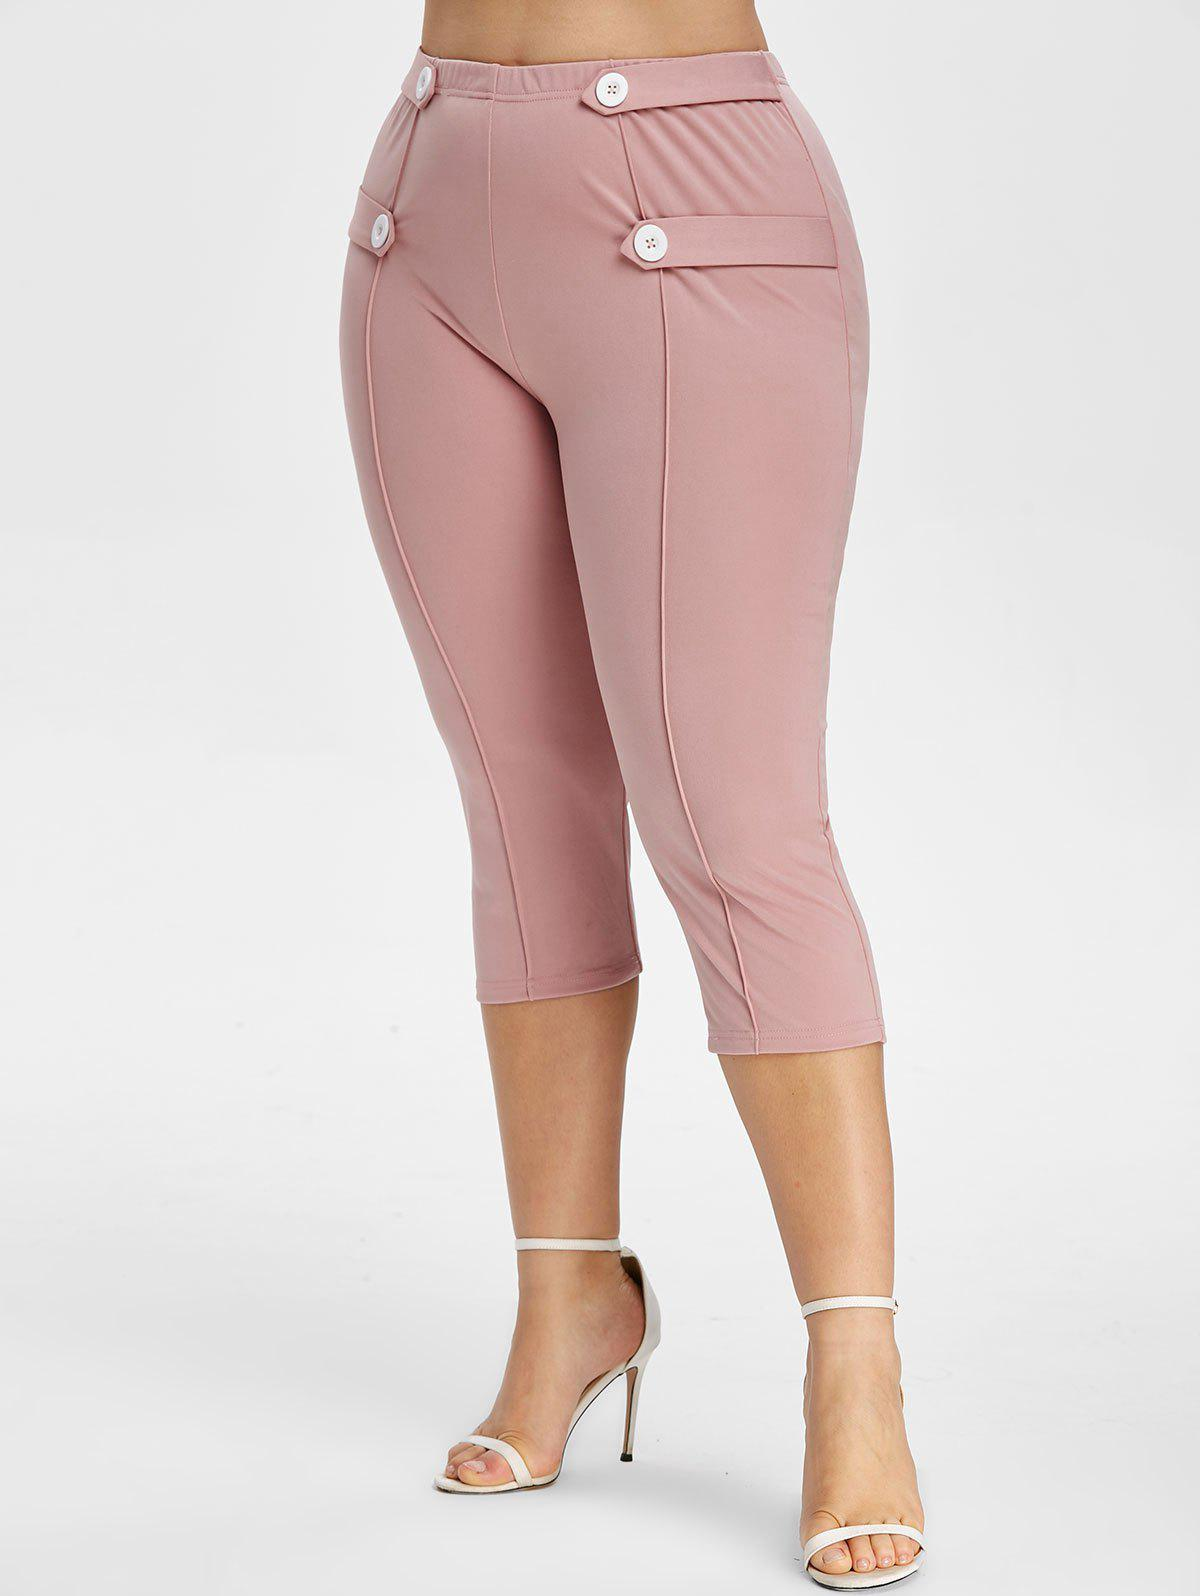 Plus Size Button Strap Tapered Capri Pants - LIGHT PINK 4X